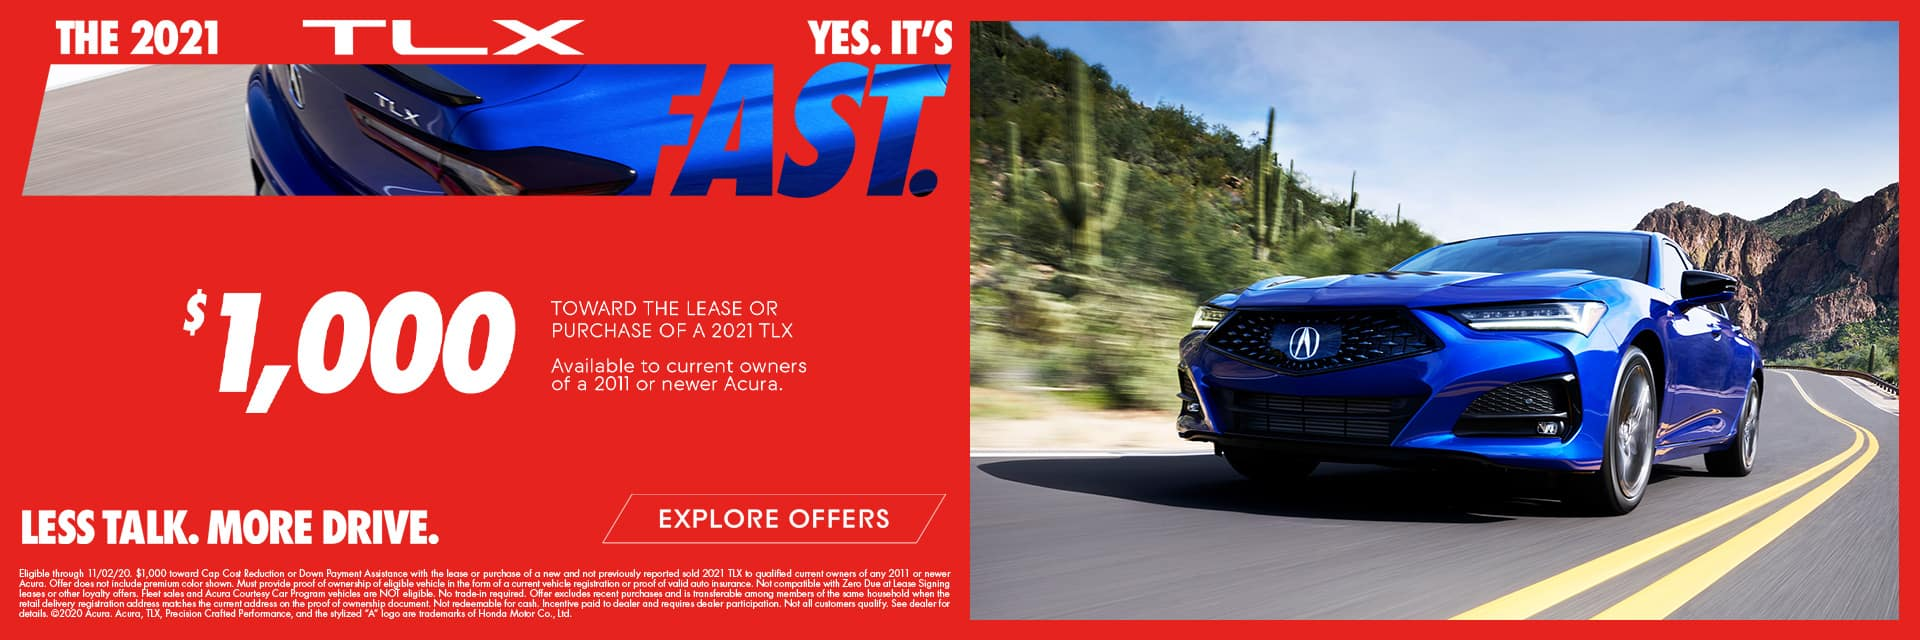 Acura 2021 TLX Loyalty Offer